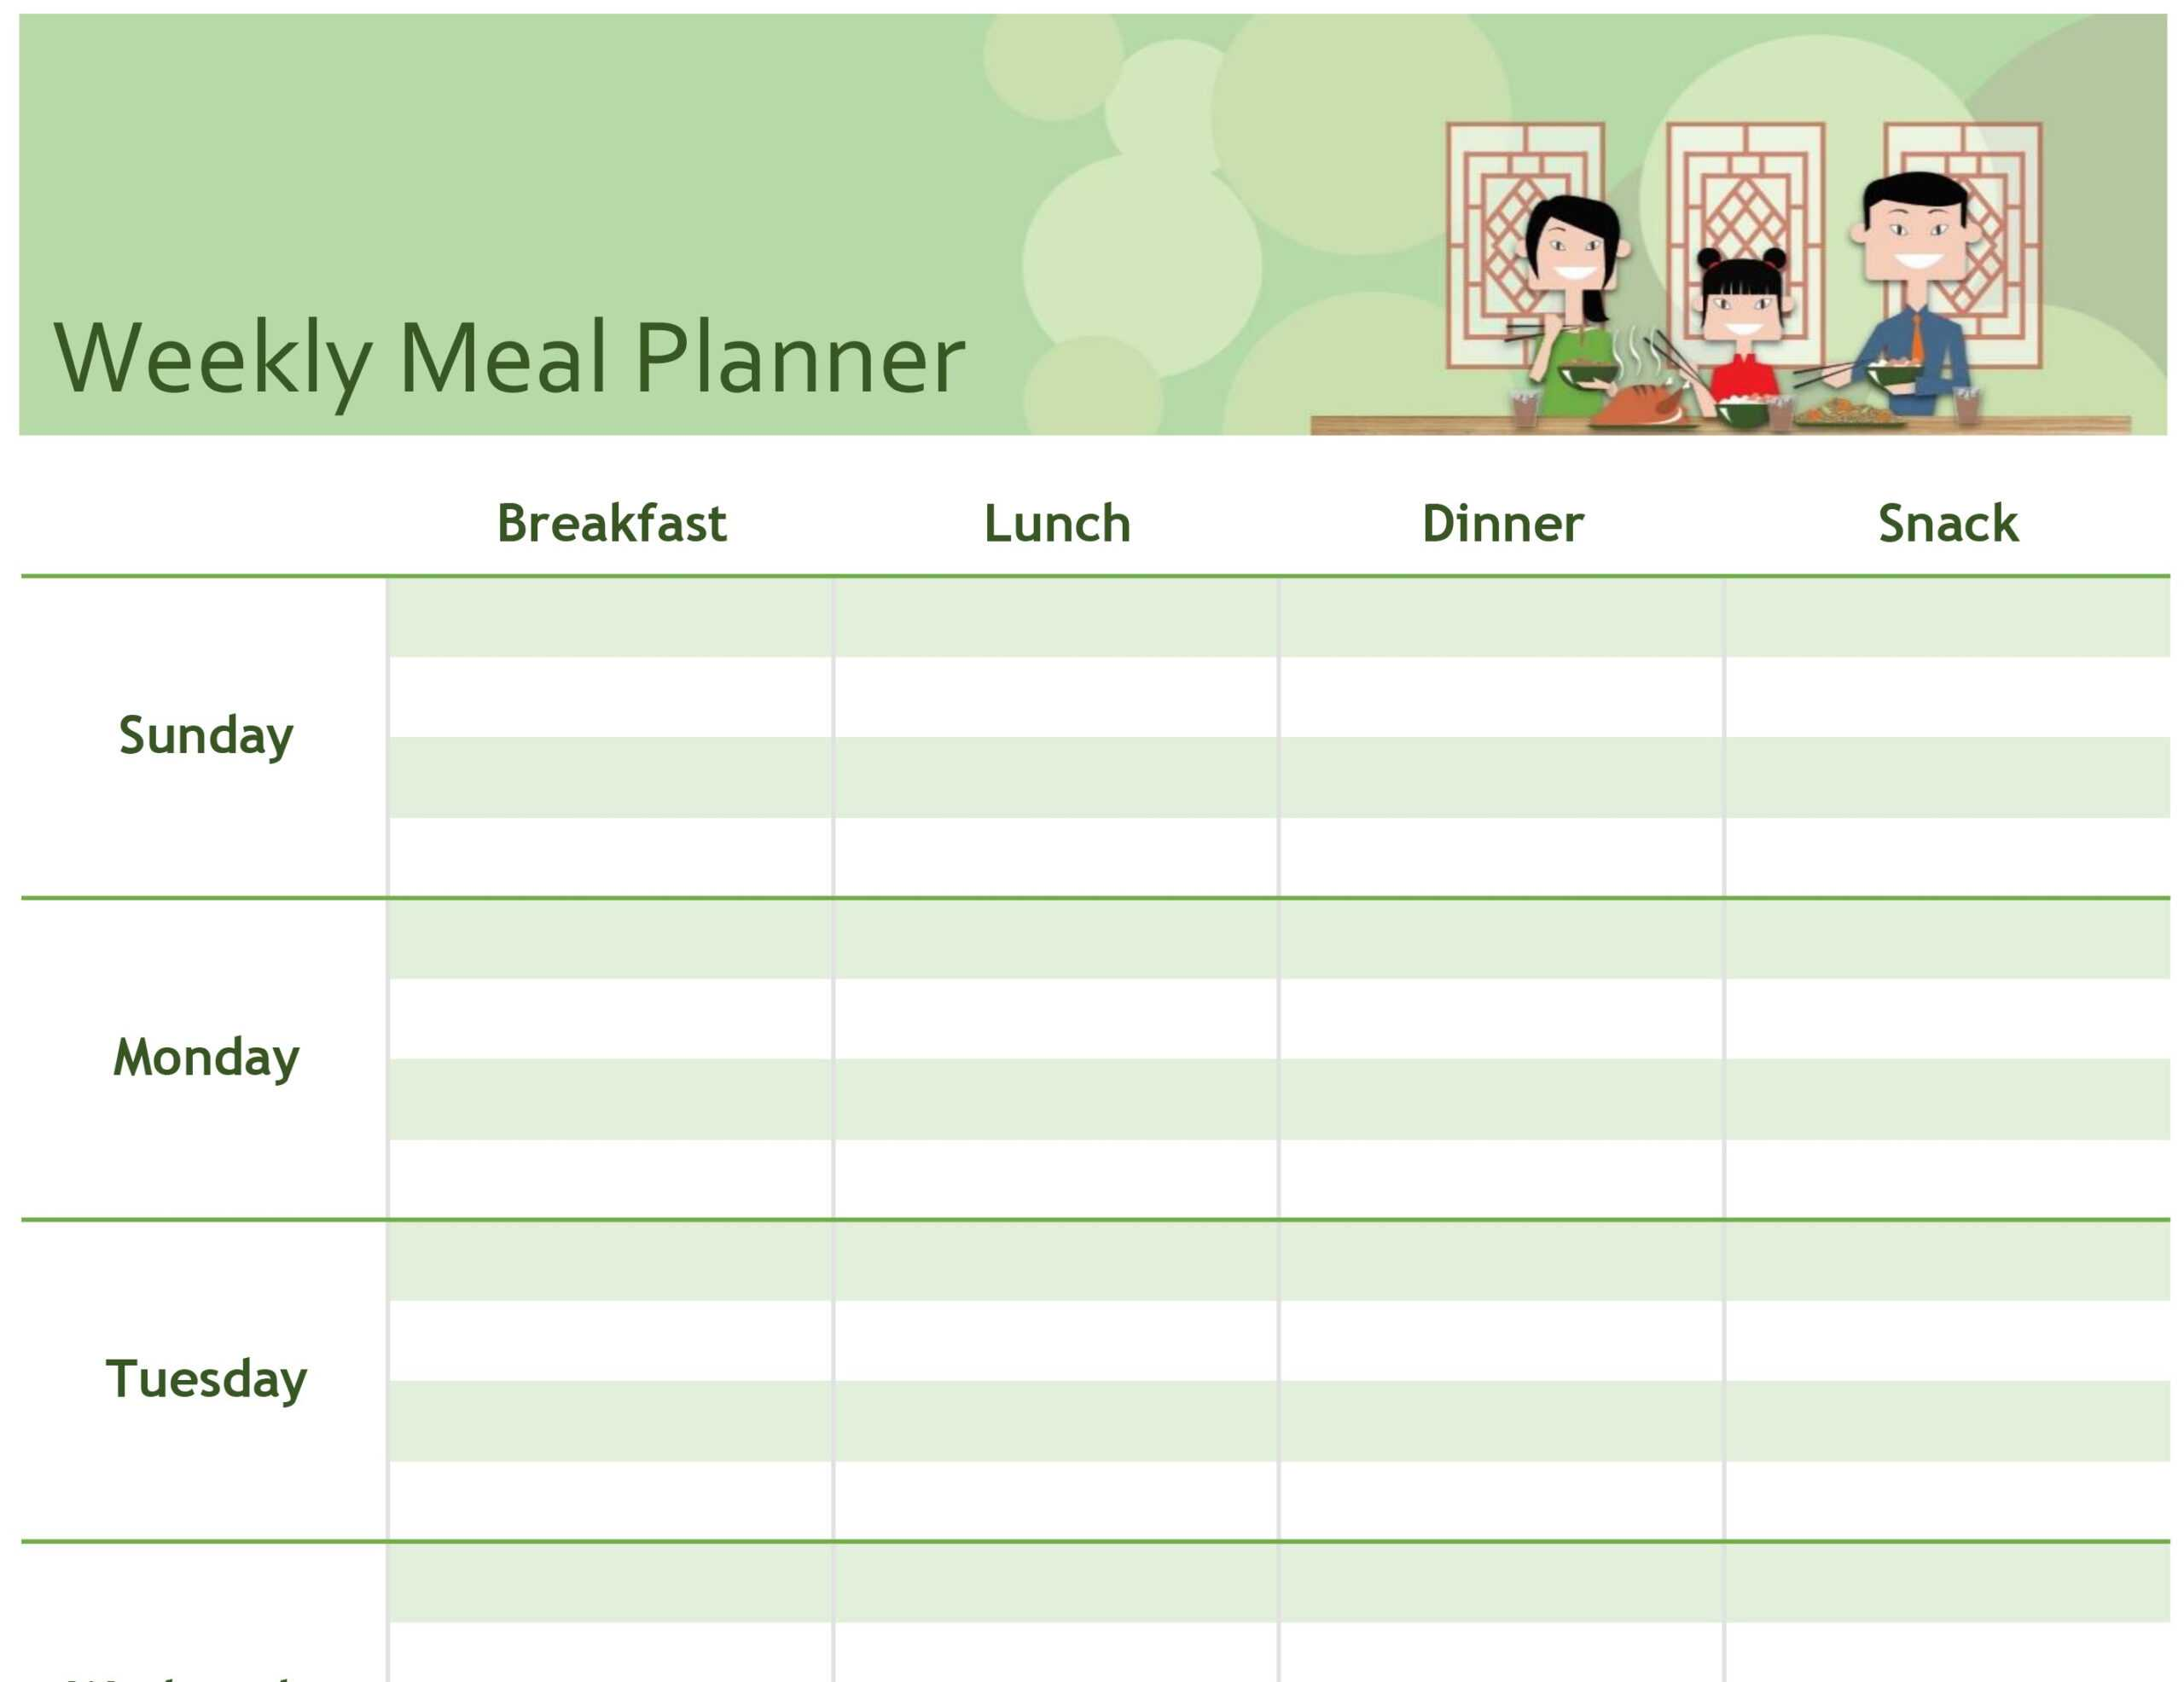 Menu Planning Template Word - Atlantaauctionco with regard to Weekly Meal Planner Template Word